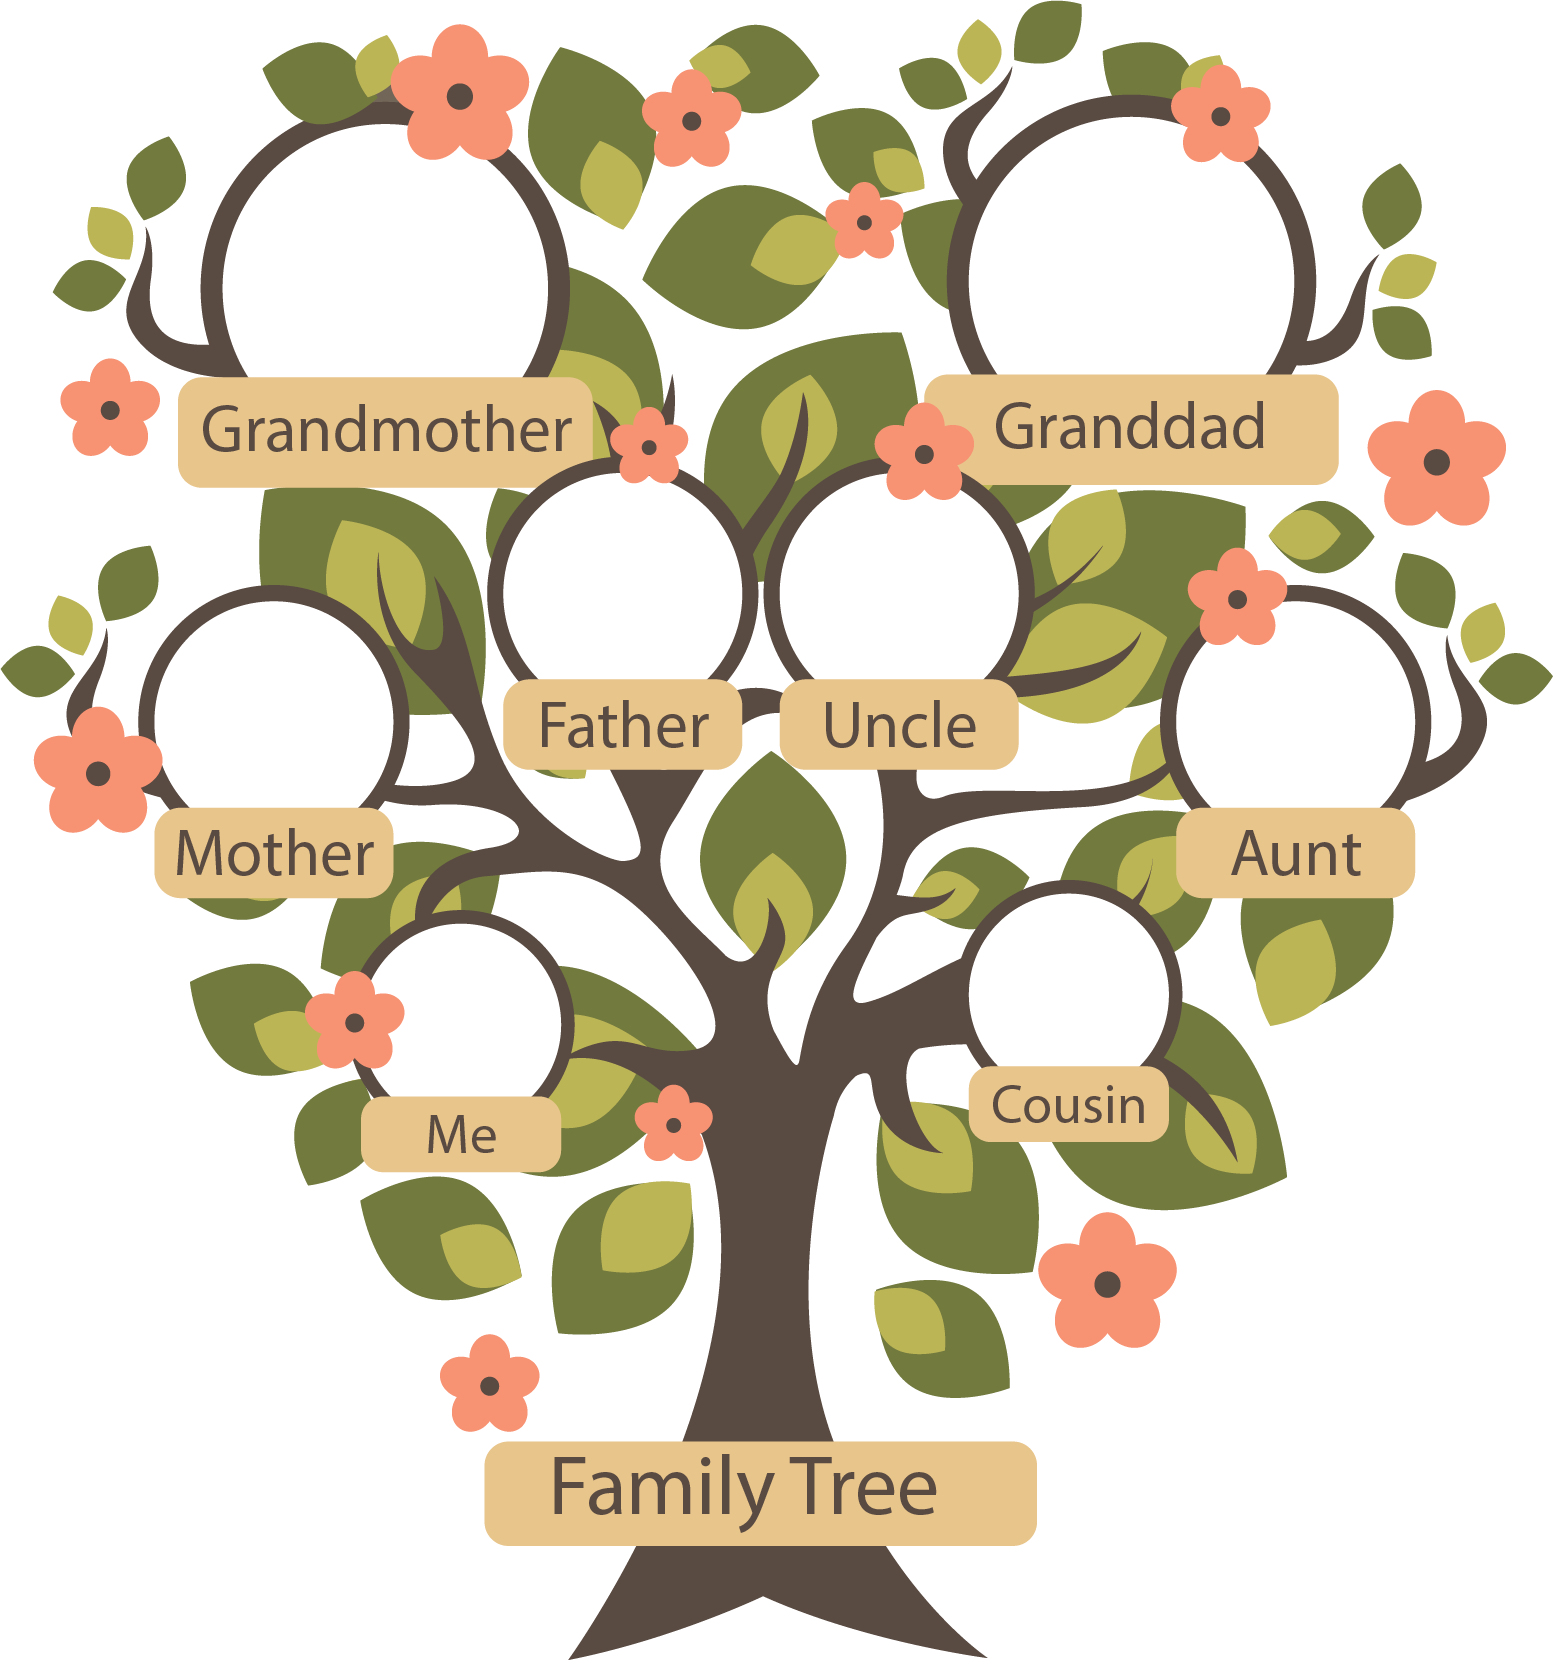 Family tree genealogy small. Cousins clipart ancestor